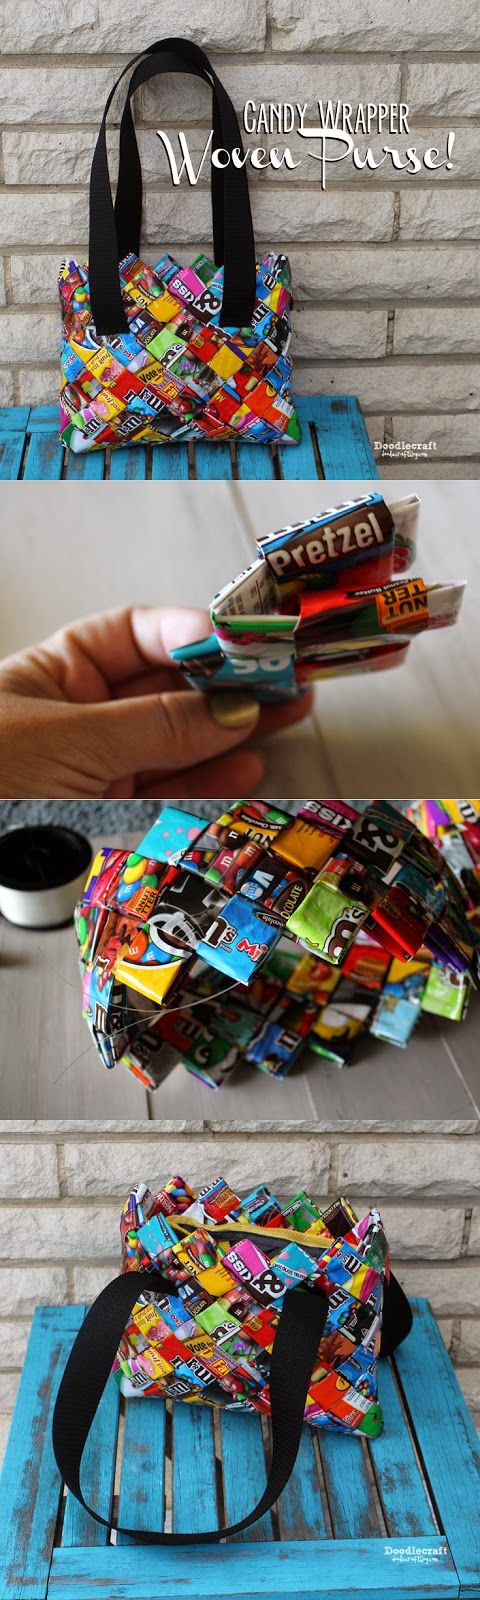 CANDY WRAPPER CRAFTS WEEK! Woven Purse/Bag! Make an adorable Upcycled Statement with this woven purse! Now, I've been hoarding ...